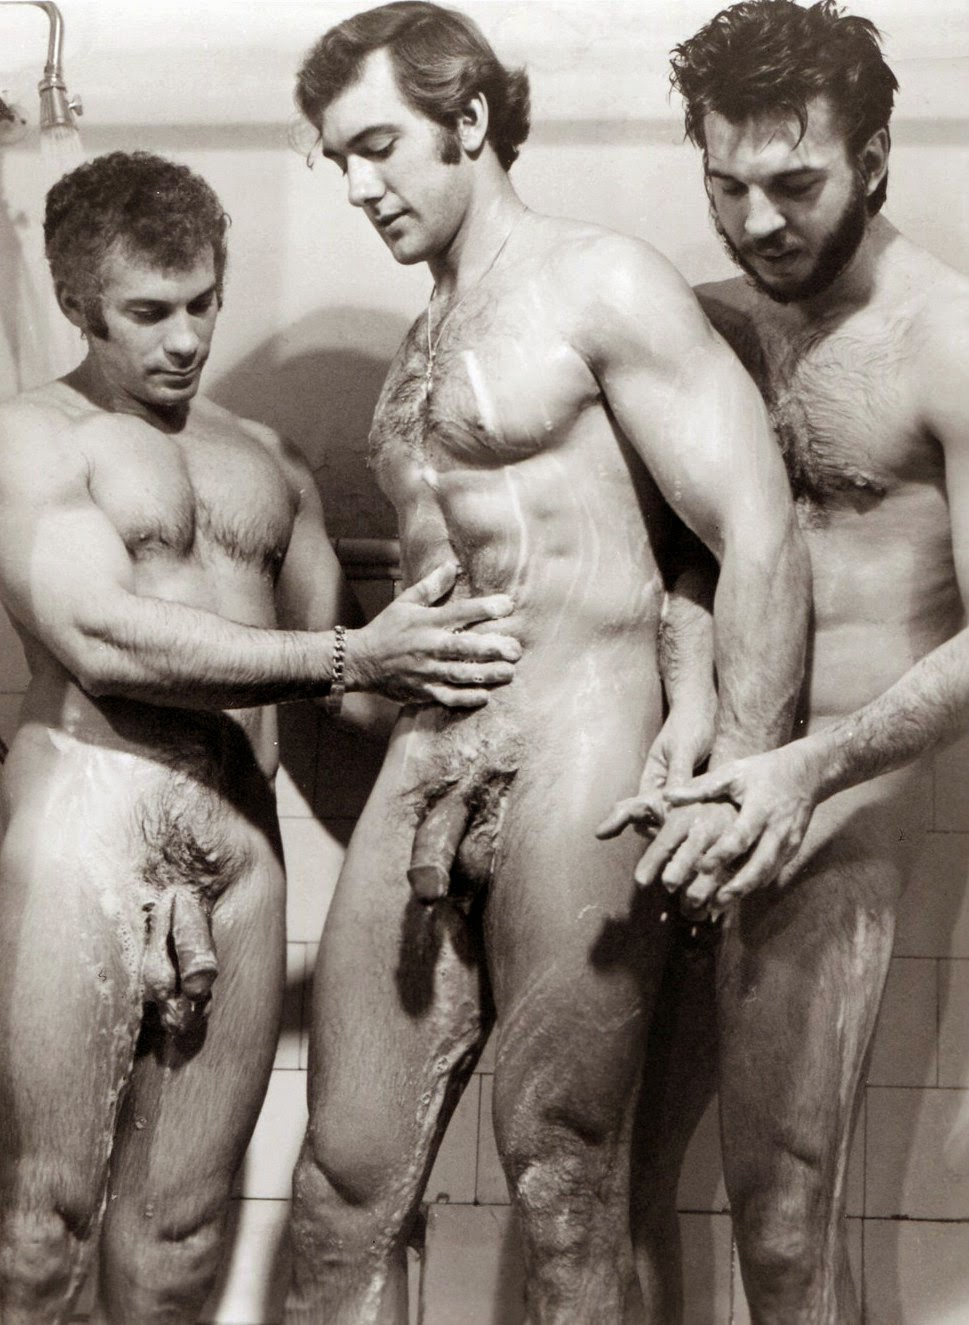 Vintage gay naked lads images